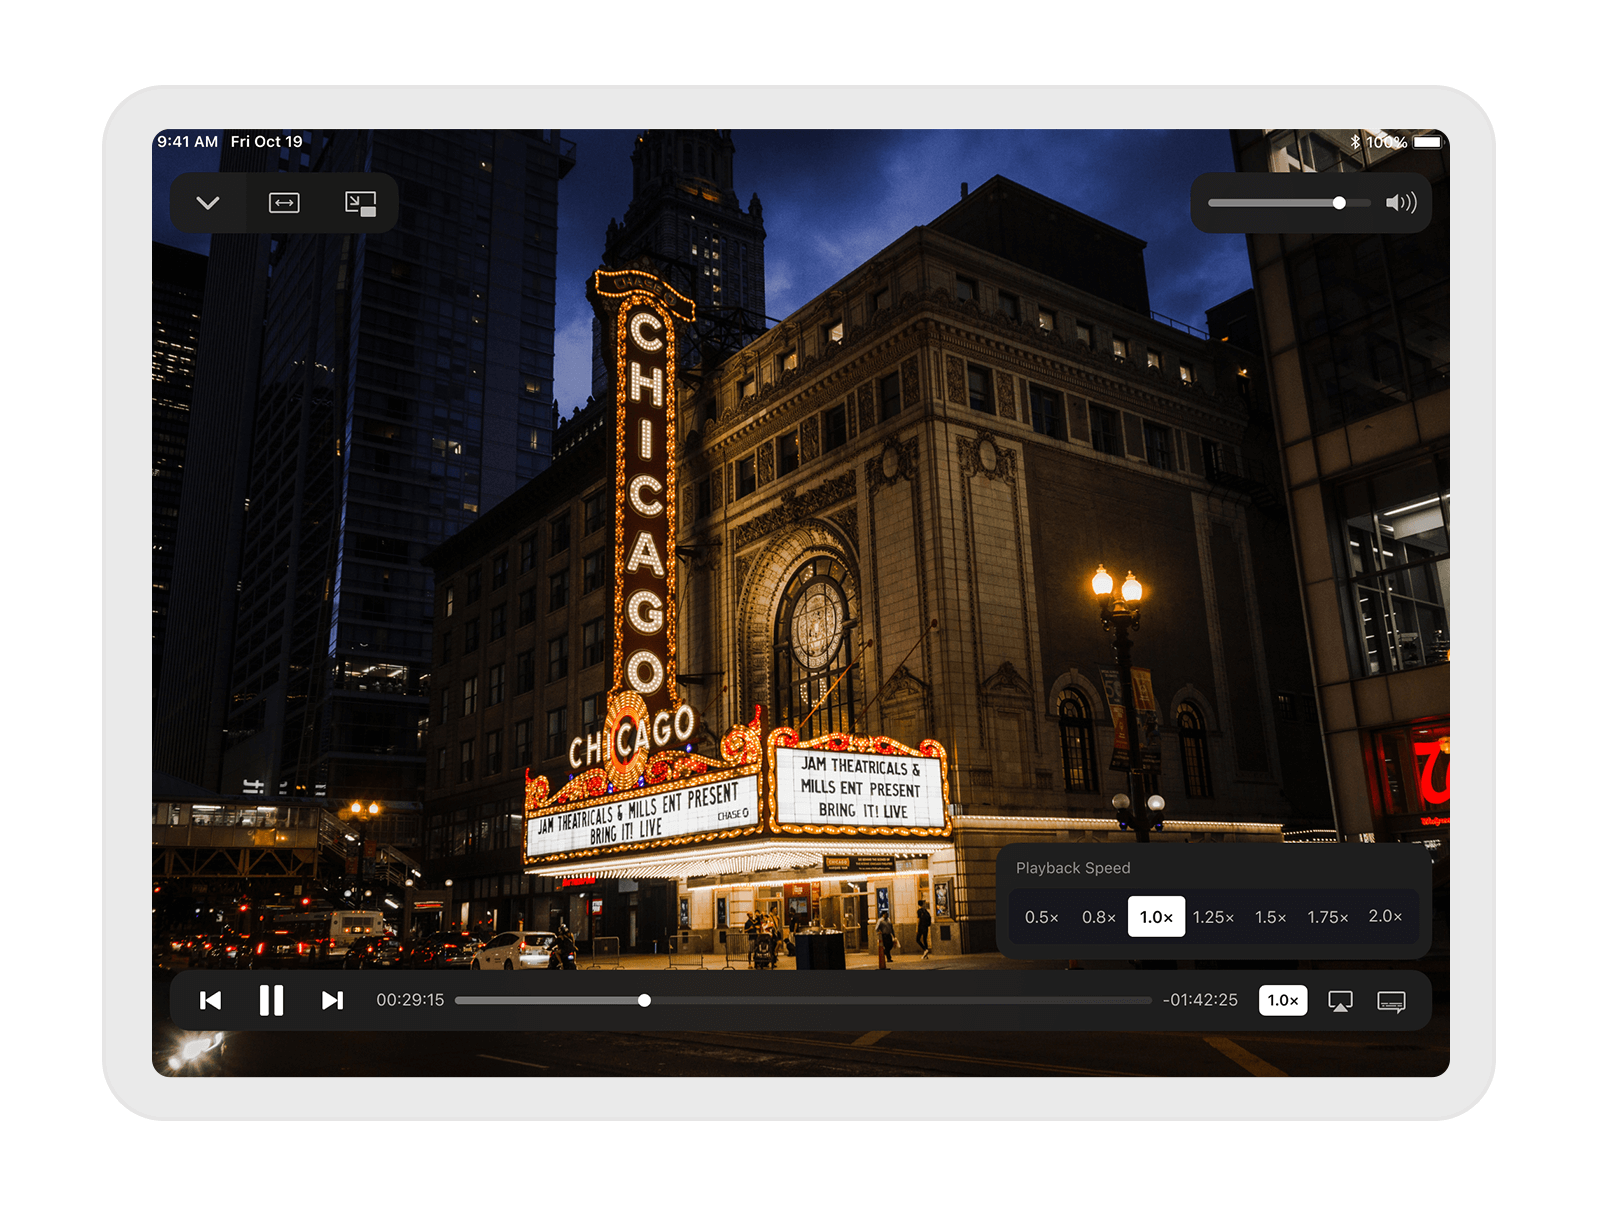 Video Player for iPhone and iPad